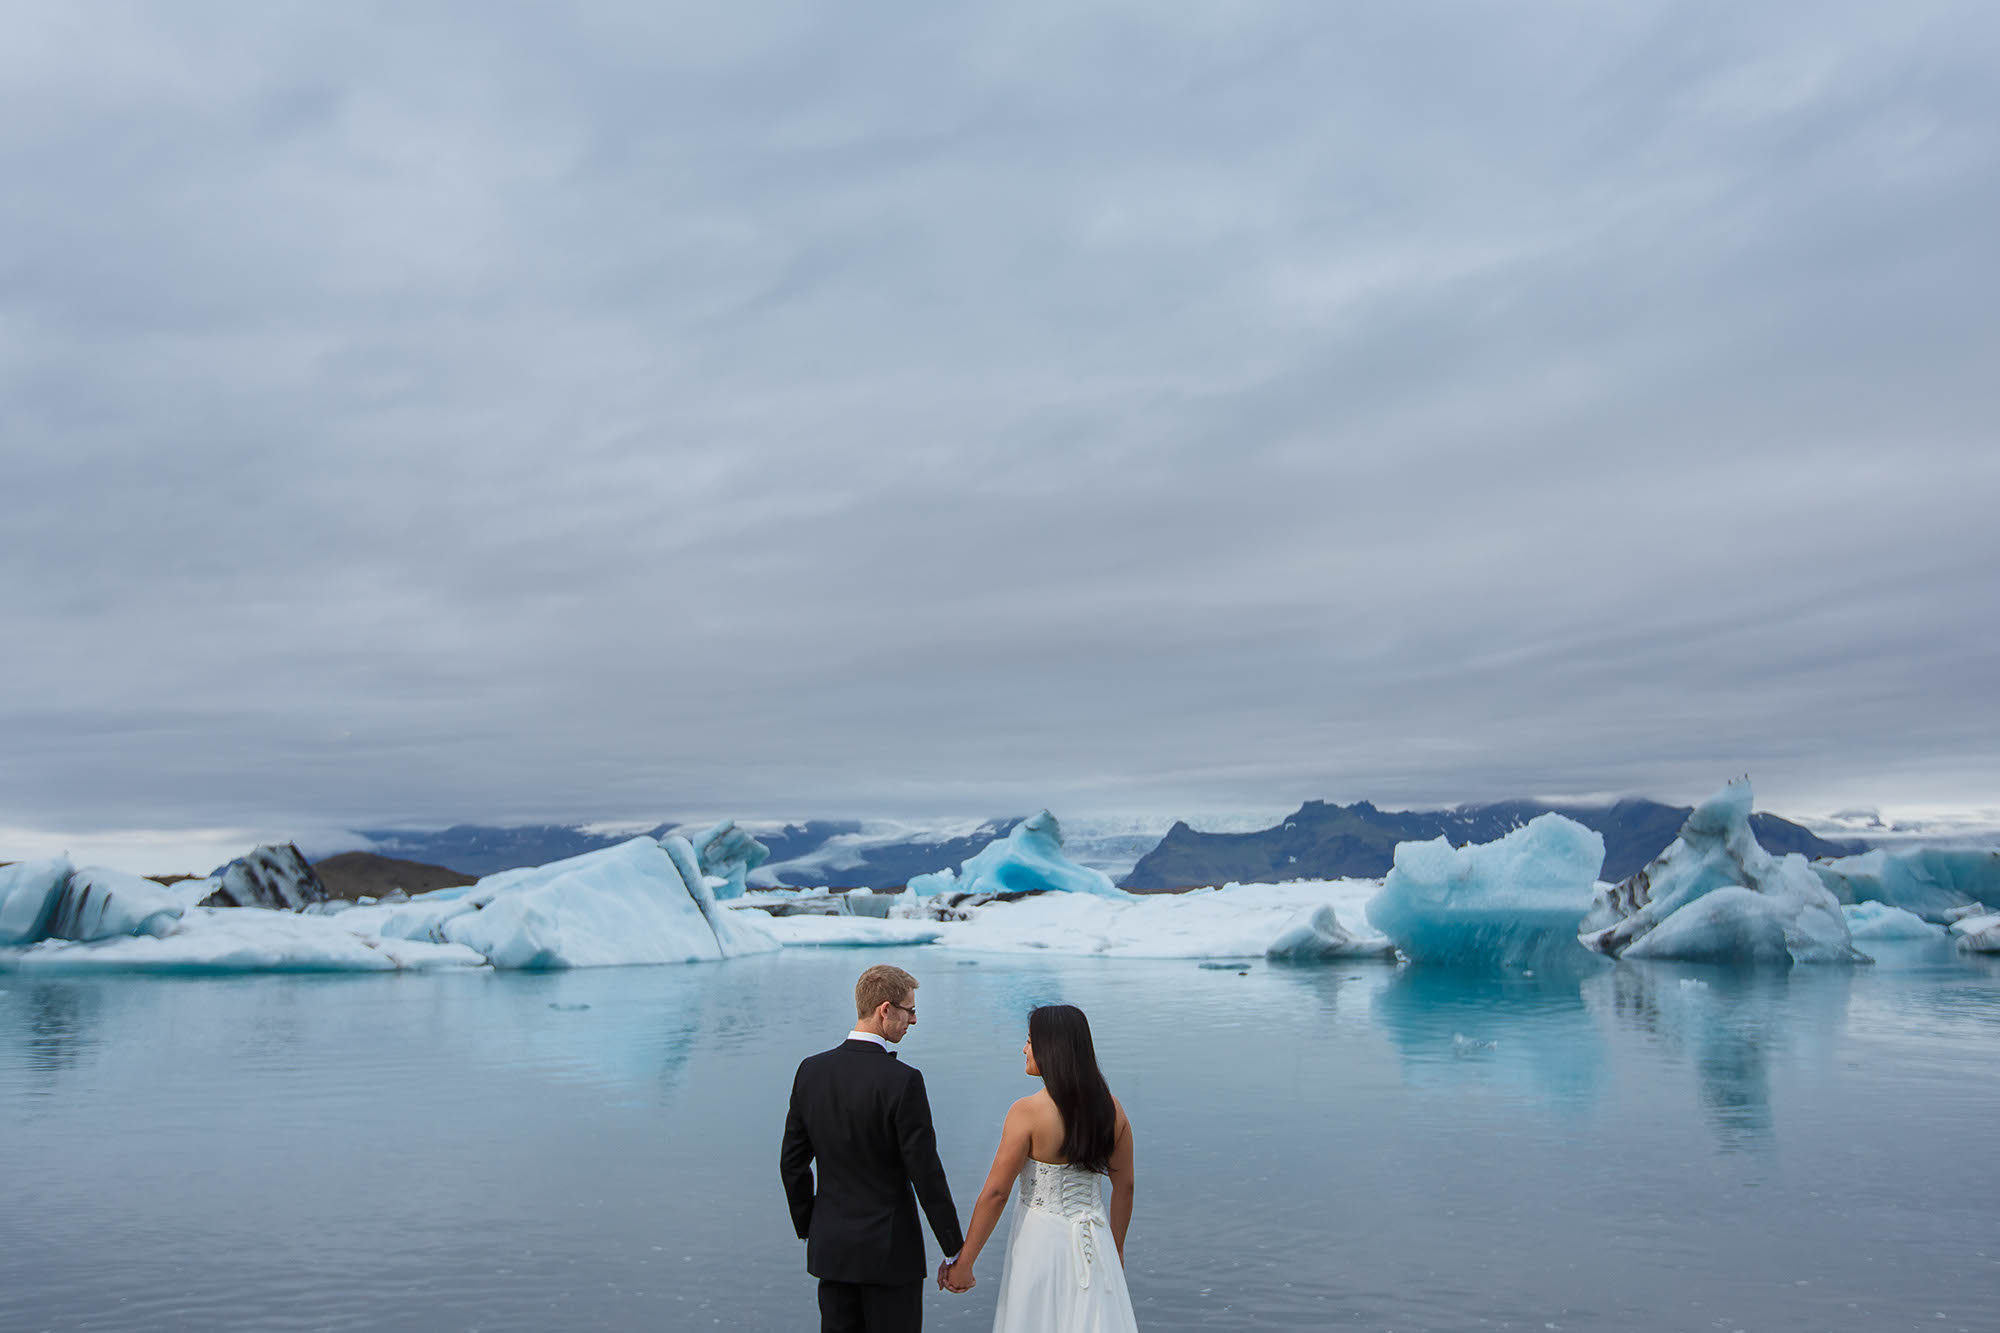 A bride and groom at Jokulsarlon glacier lagoon during their elopement to Iceland.